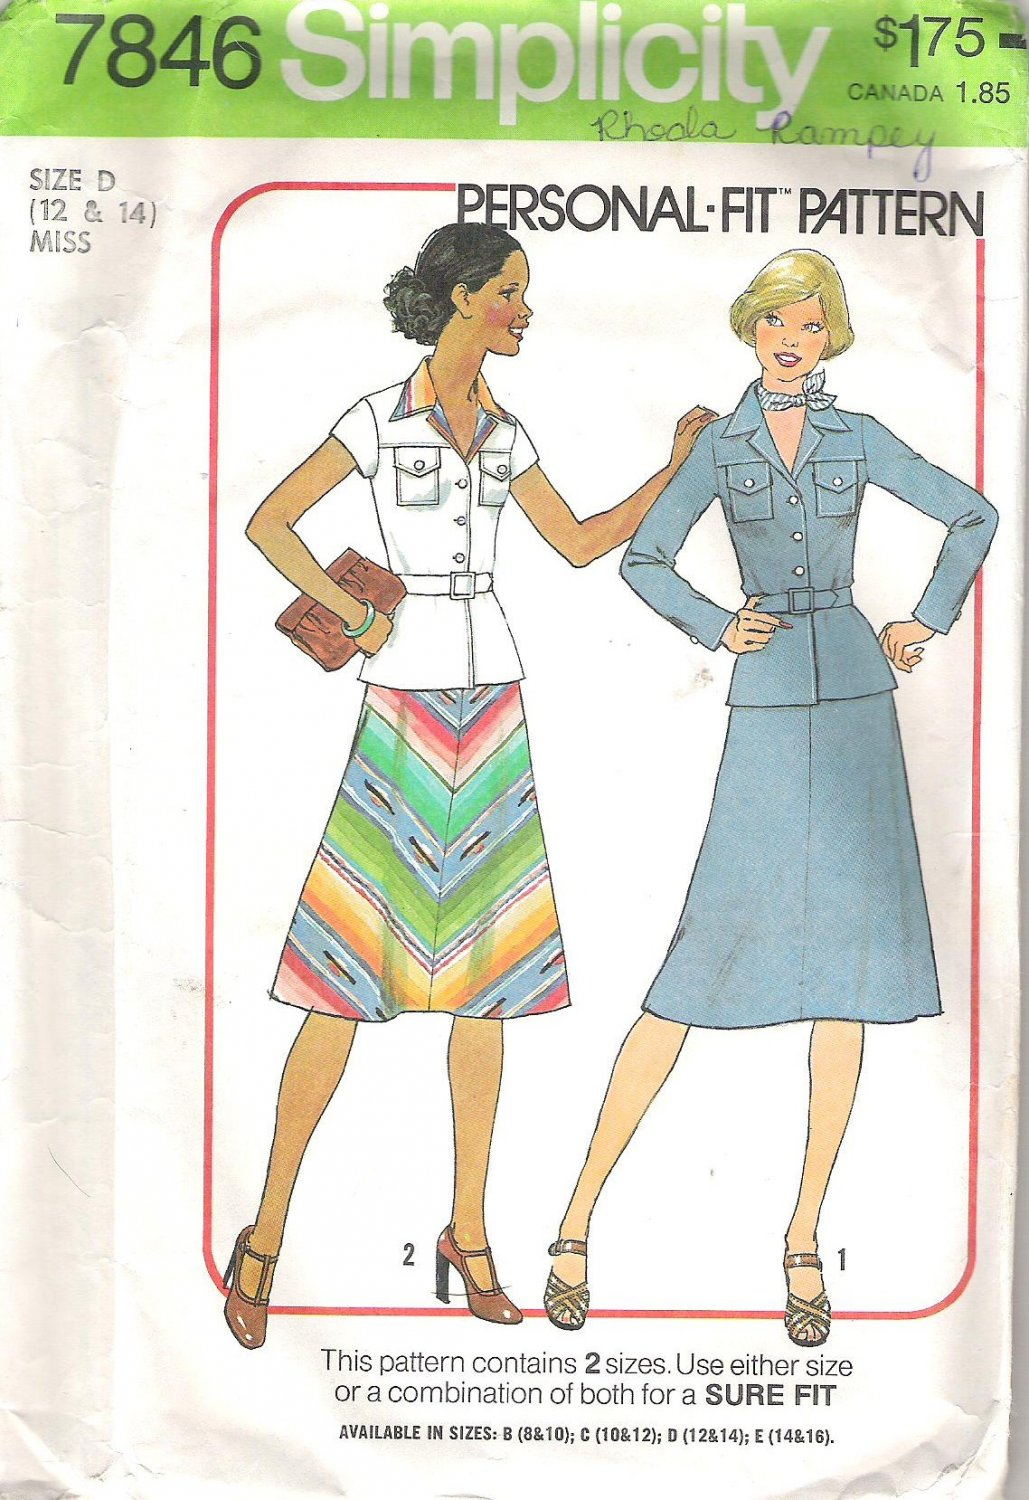 1976 Simplicity 7846 Pattern Vintage Skirt and Shirt Jacket Top  Size 12-14  Partial Cut